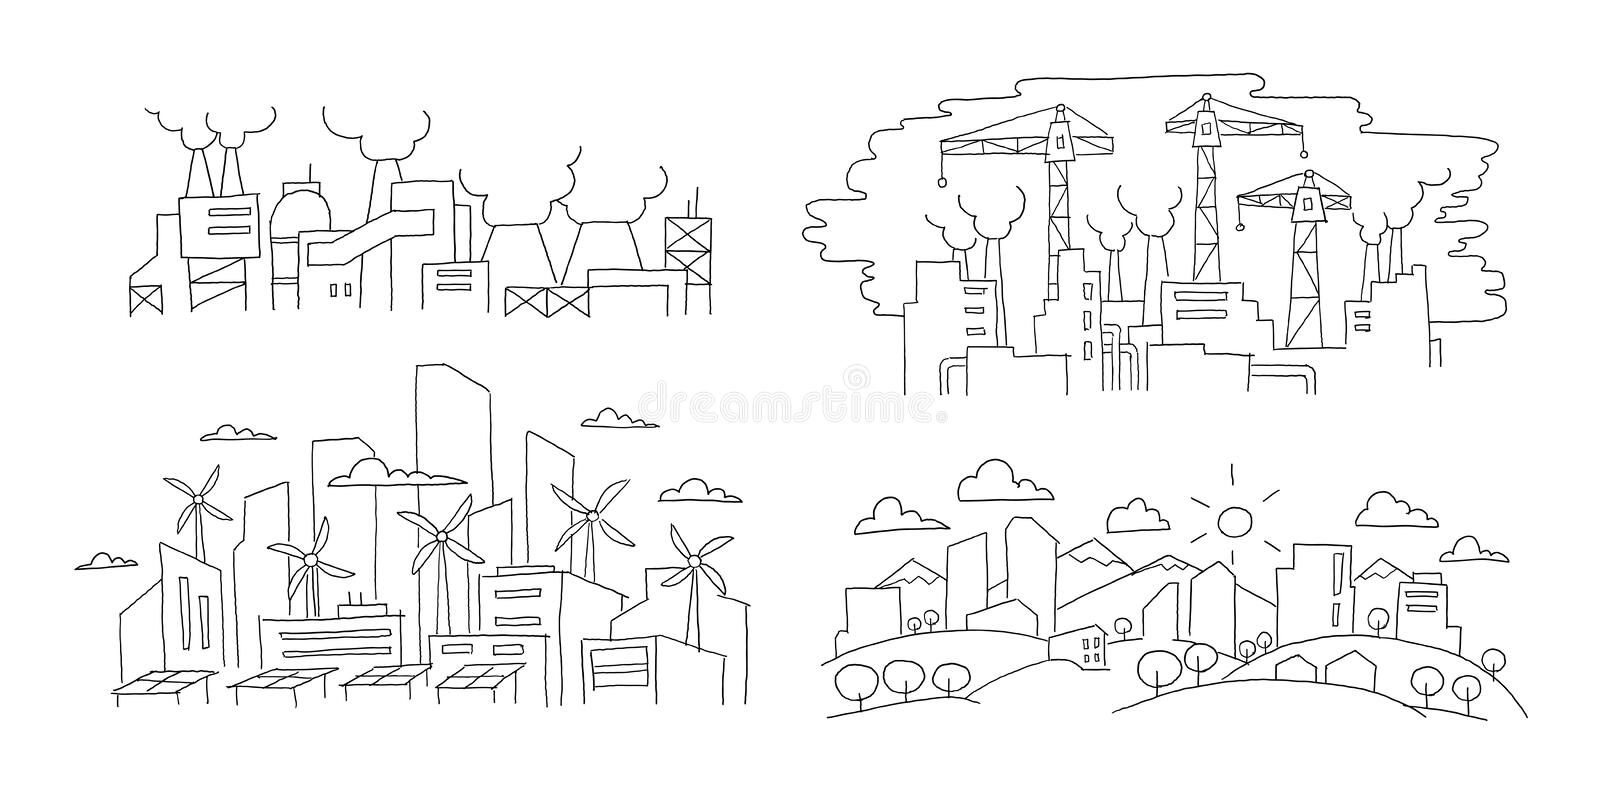 Ecological problems. City and factories. Hand drawn vector illustration. Renewable energy city and pollution environment royalty free illustration